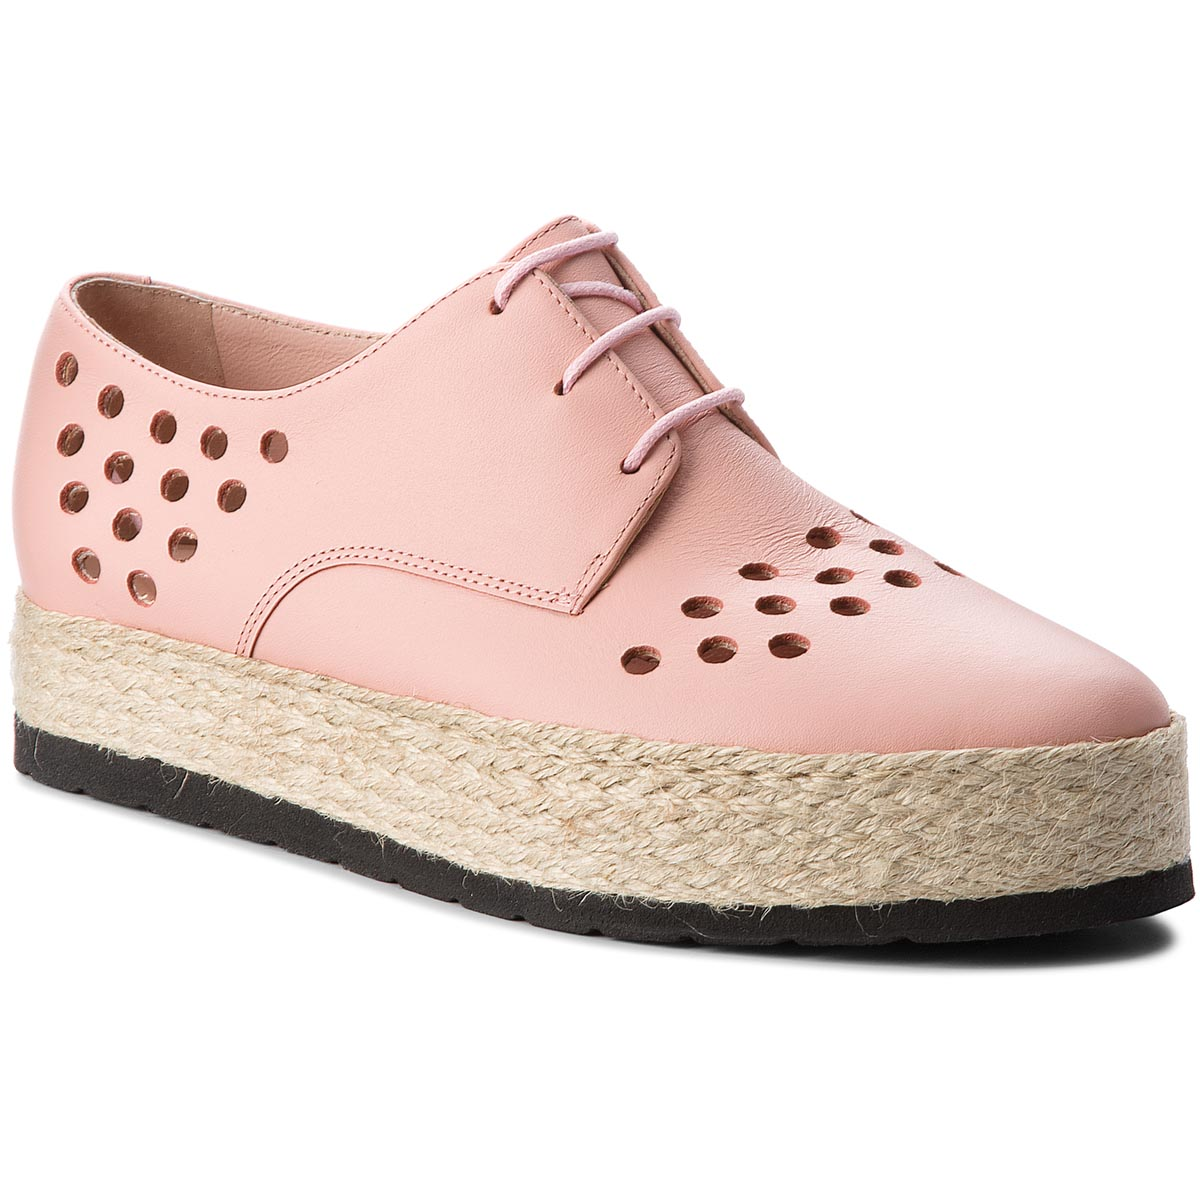 Espadrilles L37 - You & Me S31 Rose